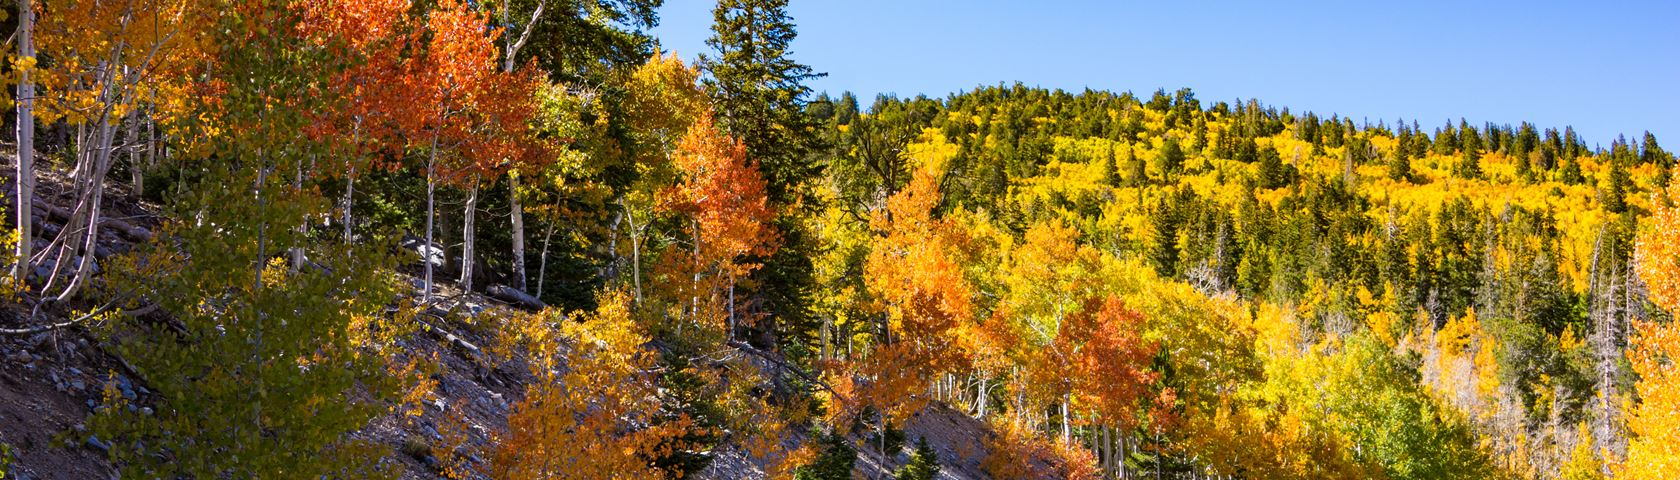 Fall Colors at 11,000 Feet